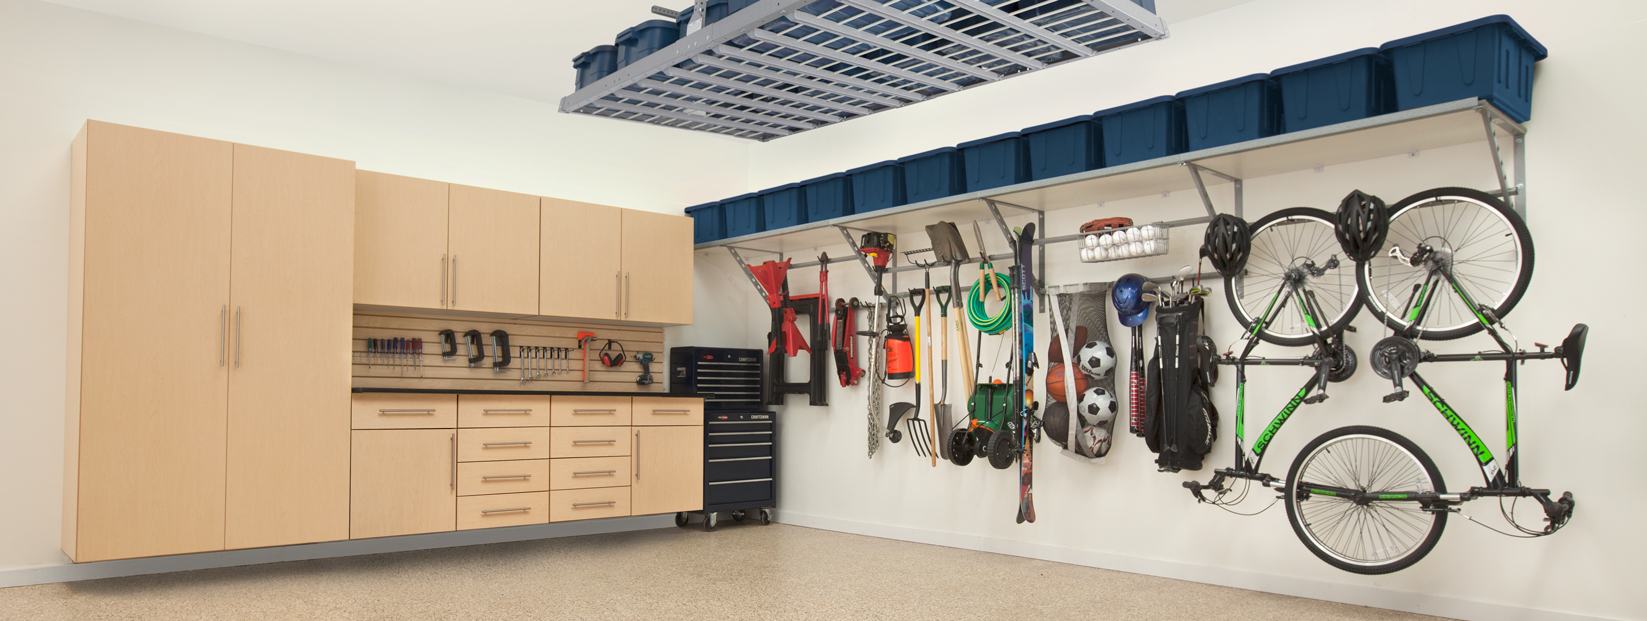 Garage Storage Solutions in Cary